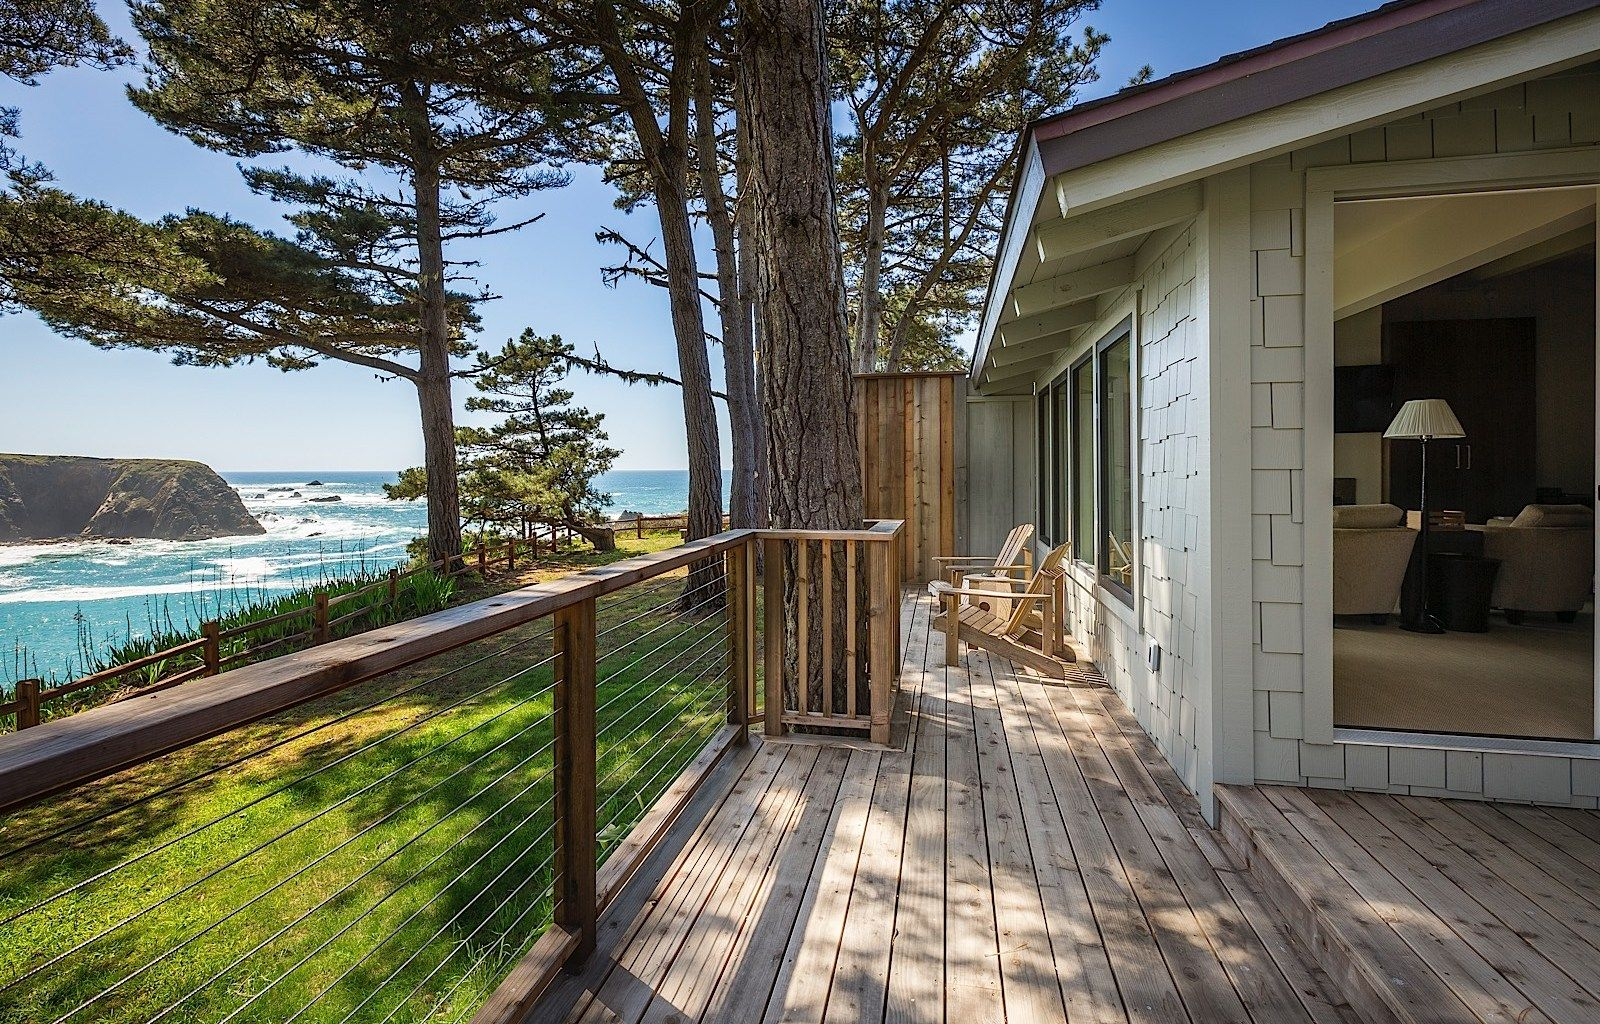 Heritage House Resort | Little River California, Mendocino | Iu0027ll Take Two  | Pinterest | Resorts, Rivers And Northern California